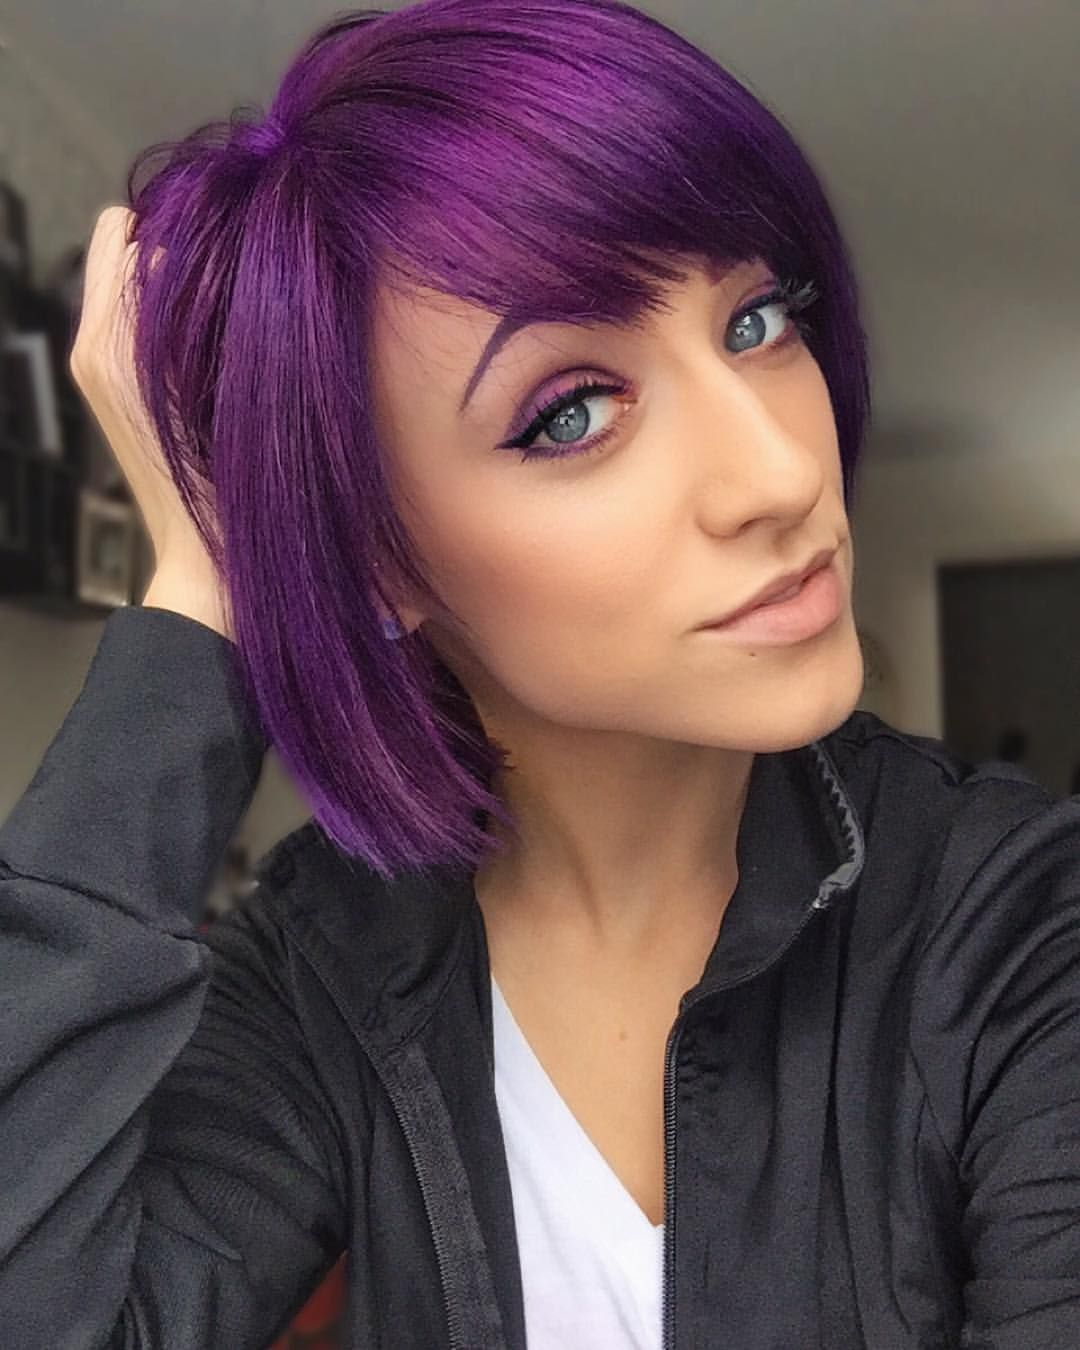 black and purple hair styles black and purple hairstyles fade haircut 1538